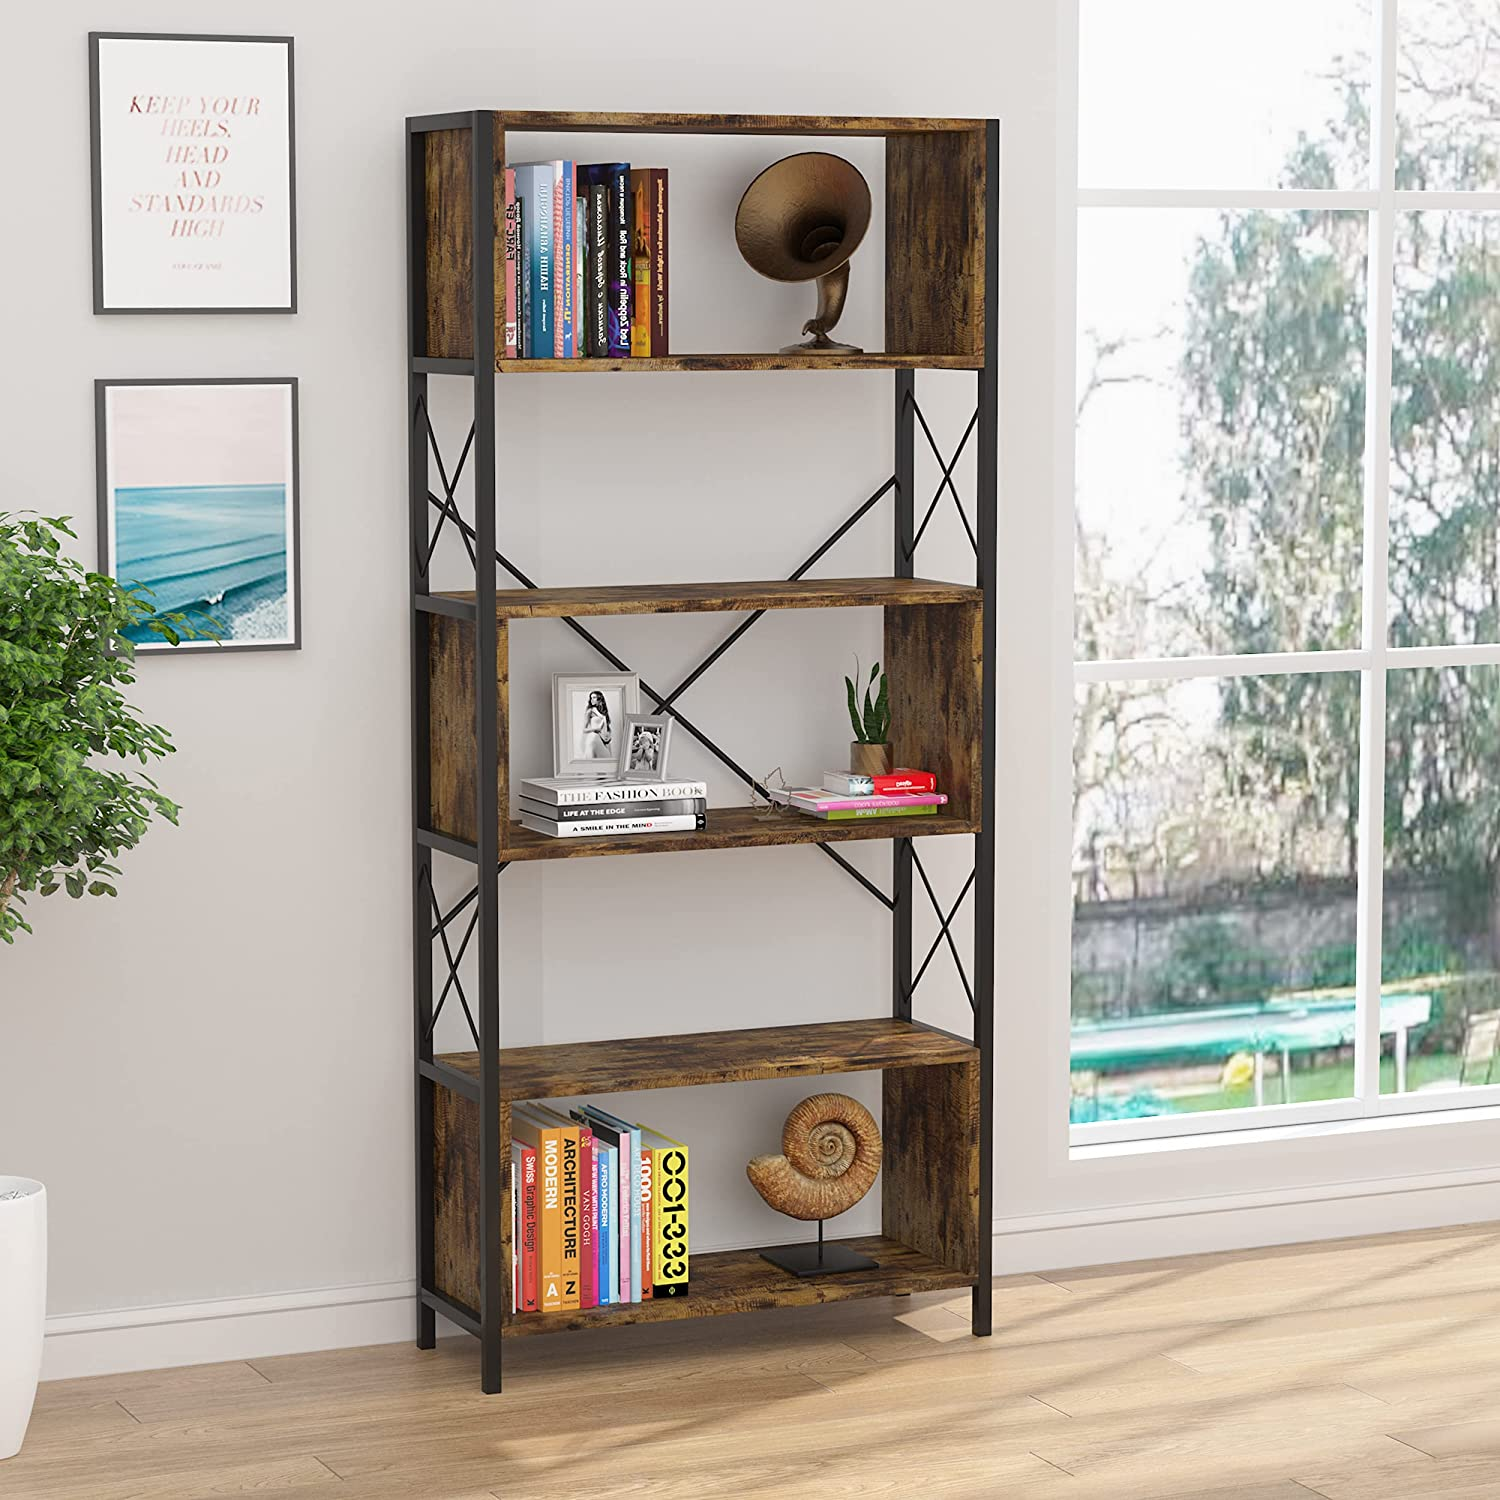 AOUSTHOP 5 Tier Bookshelf, Modern Industrial Bookcase Open Display Shelves with Metal Frame for Home Office Living Room, Retro Brown